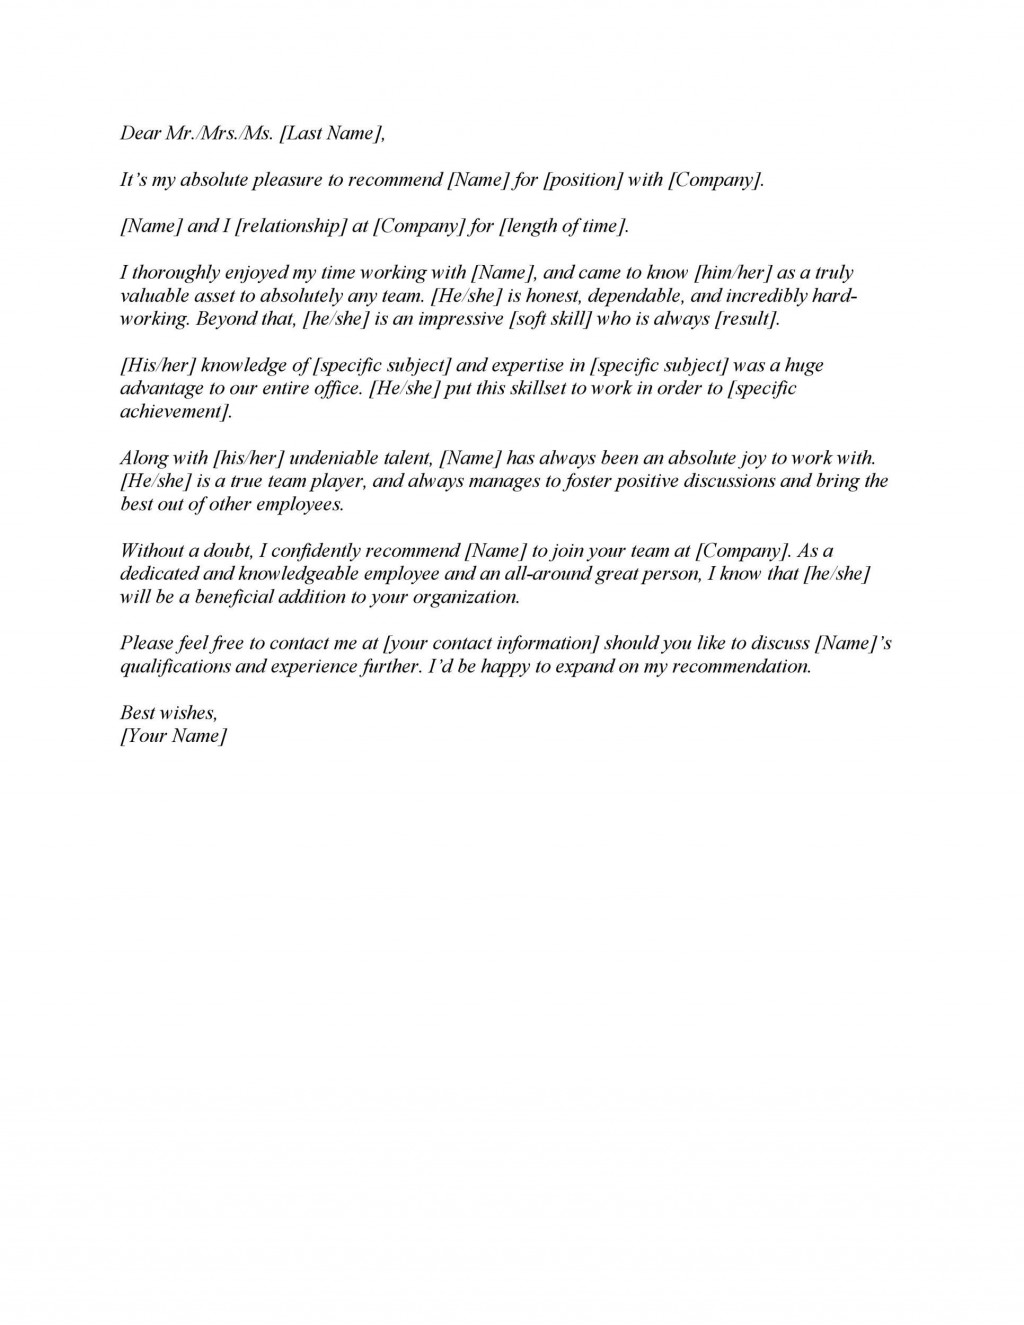 004 Amazing Letter Of Recommendation Template Word Design  General UkLarge